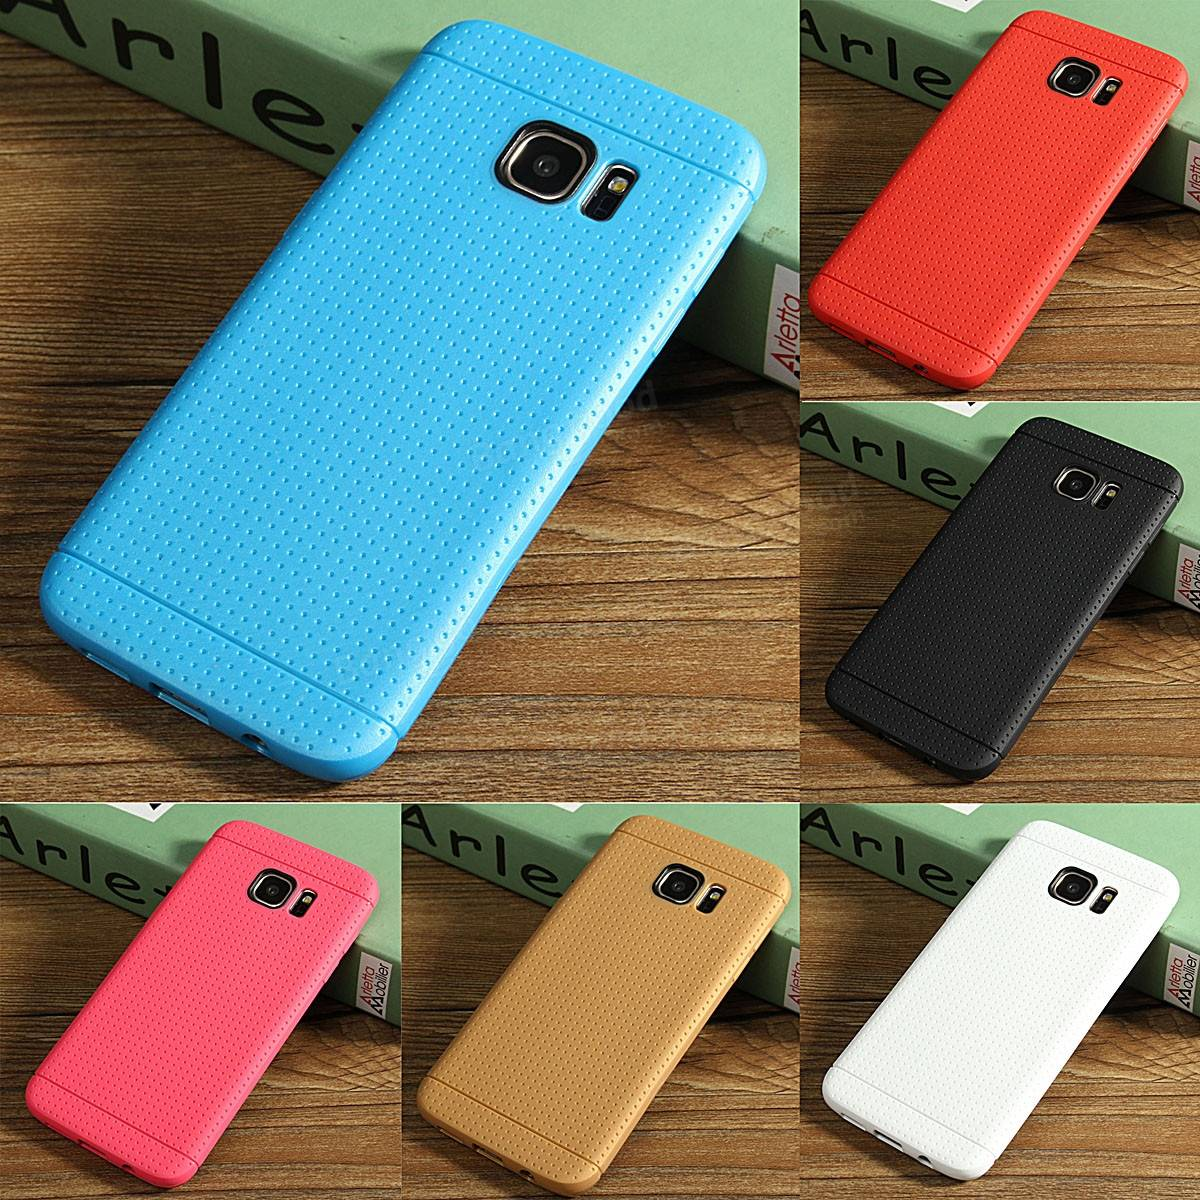 Silicone Durable Soft TPU Gel Case Cover For Samsung Galaxy S7 Edge